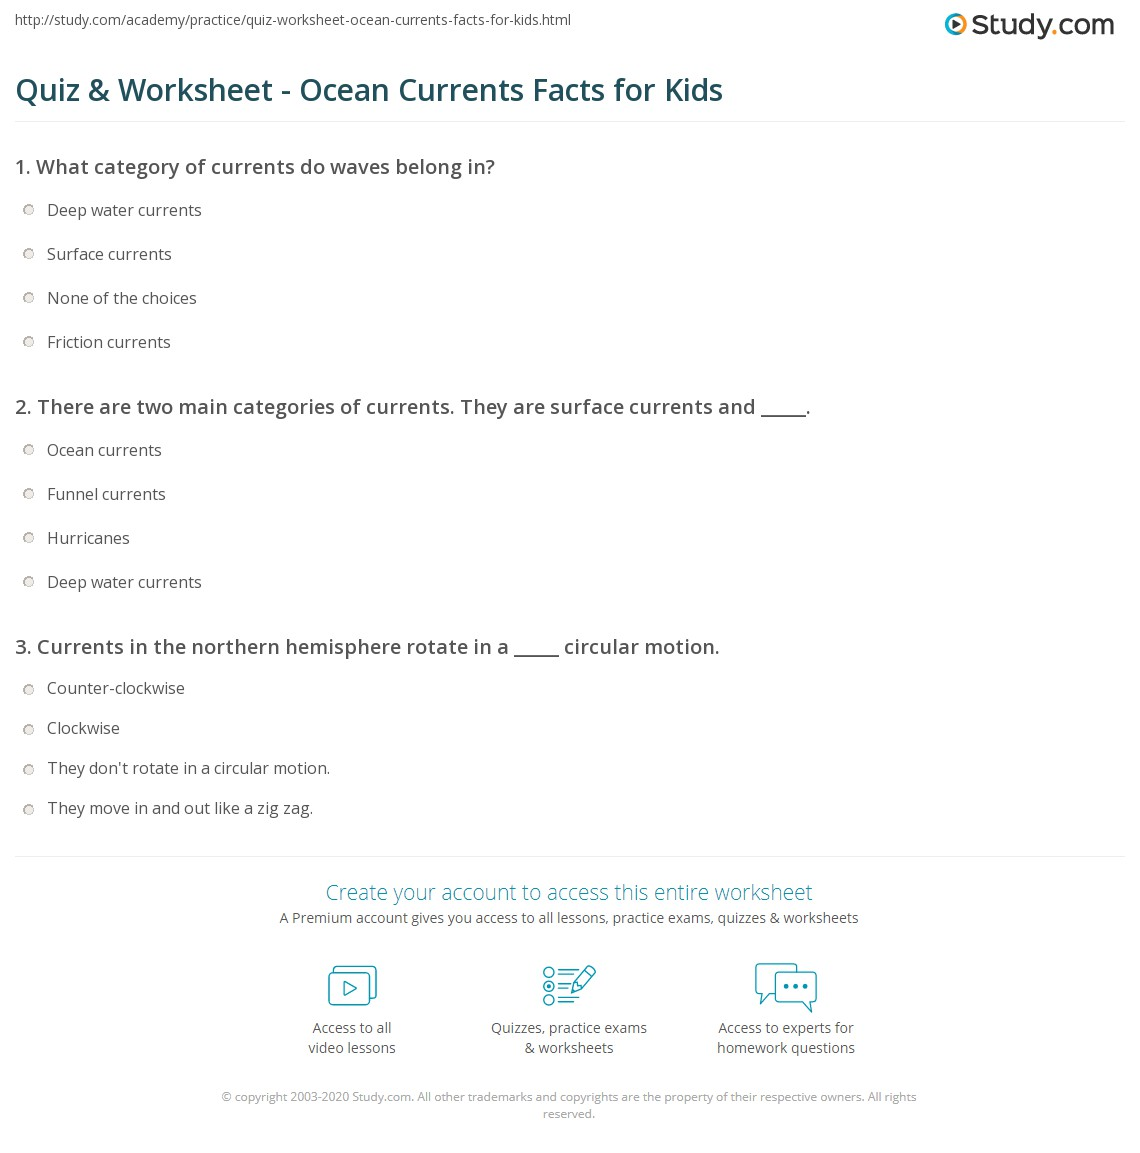 Quiz Worksheet Ocean Currents Facts For Kids Study